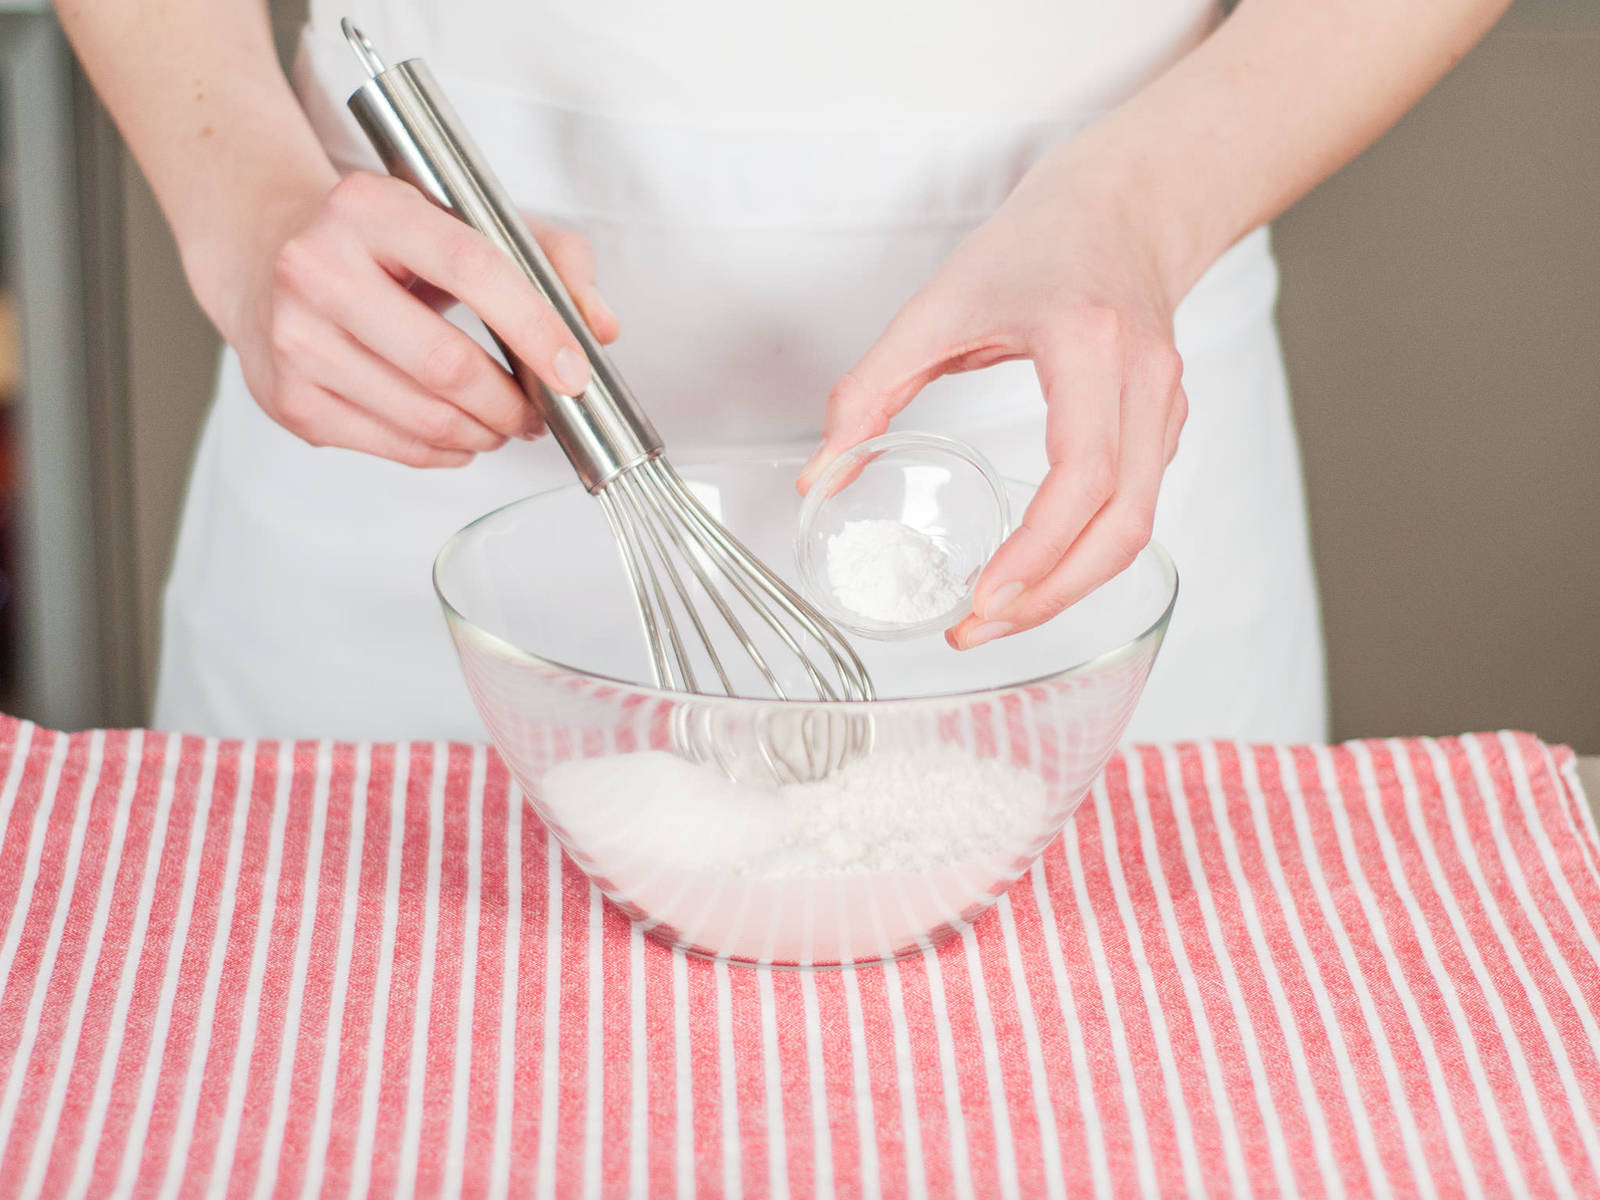 Whisk together flour, some of the sugar, a pinch of salt, and baking powder.